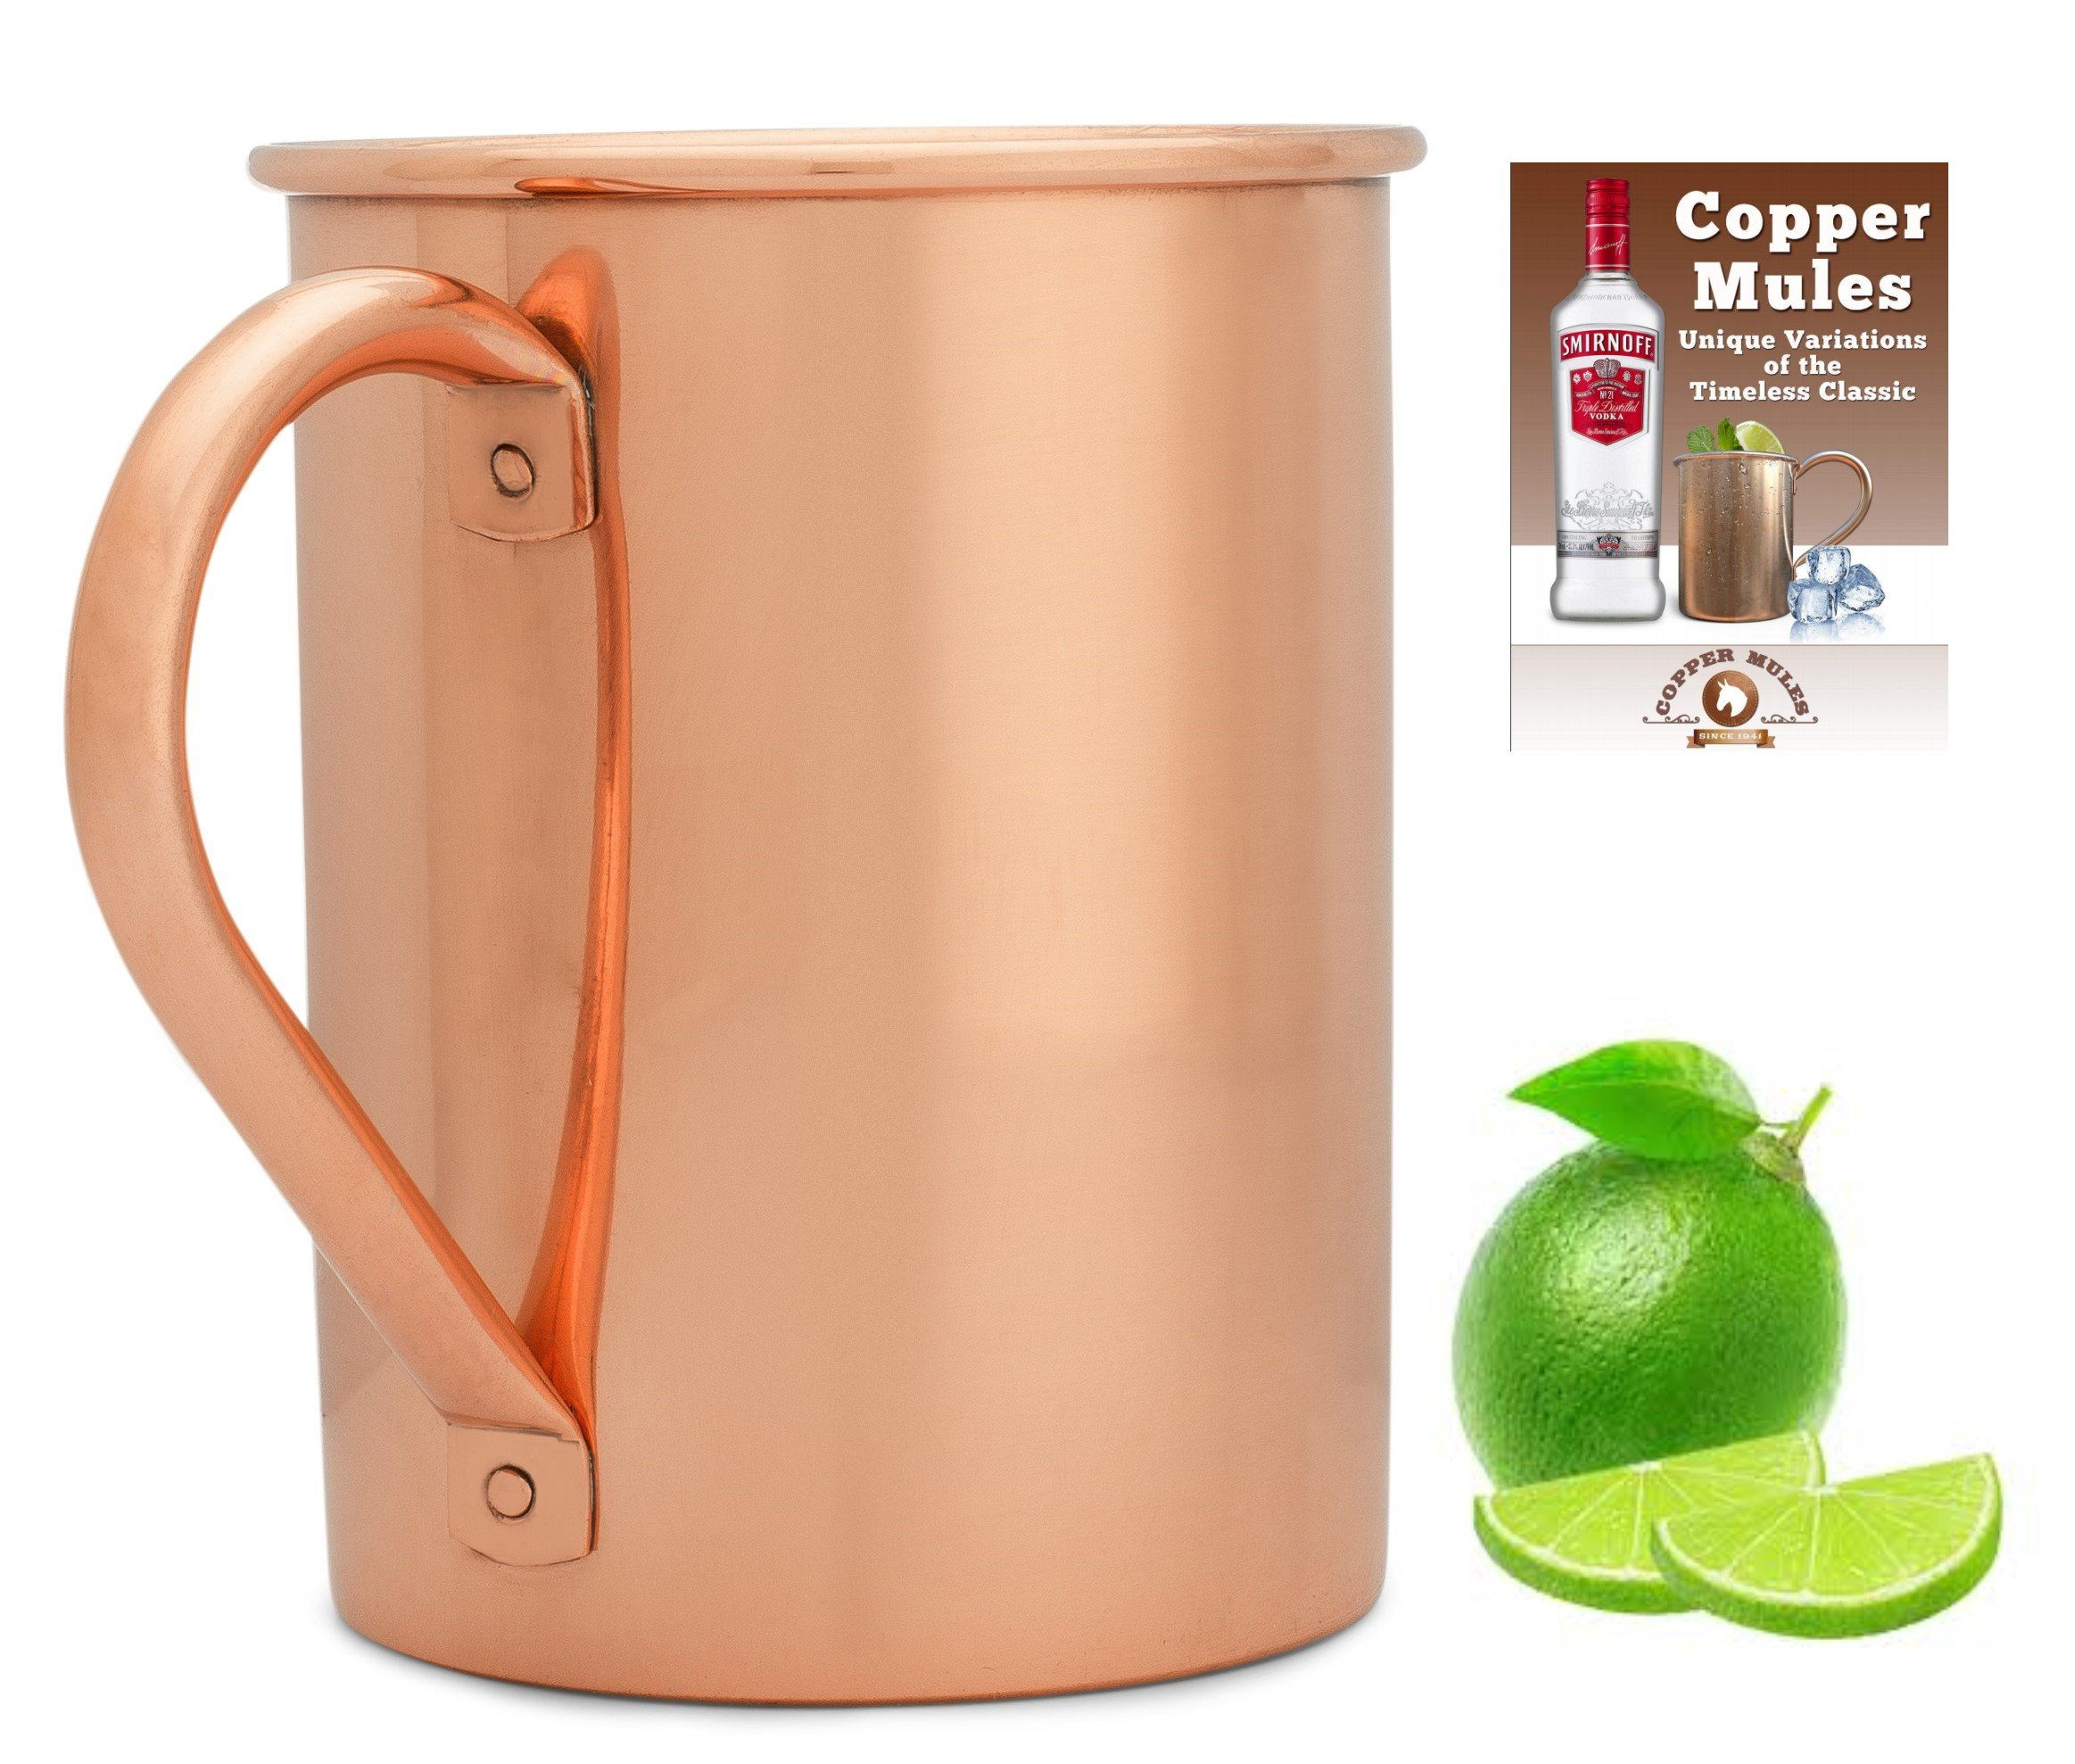 Moscow Mule Copper Mug by Copper Mules – Handcrafted from 100% Pure Copper - Smooth Finish - No Liner for Ayurveda Health - Riveted Handle for Strength - Holds 16 oz – BONUS eBook